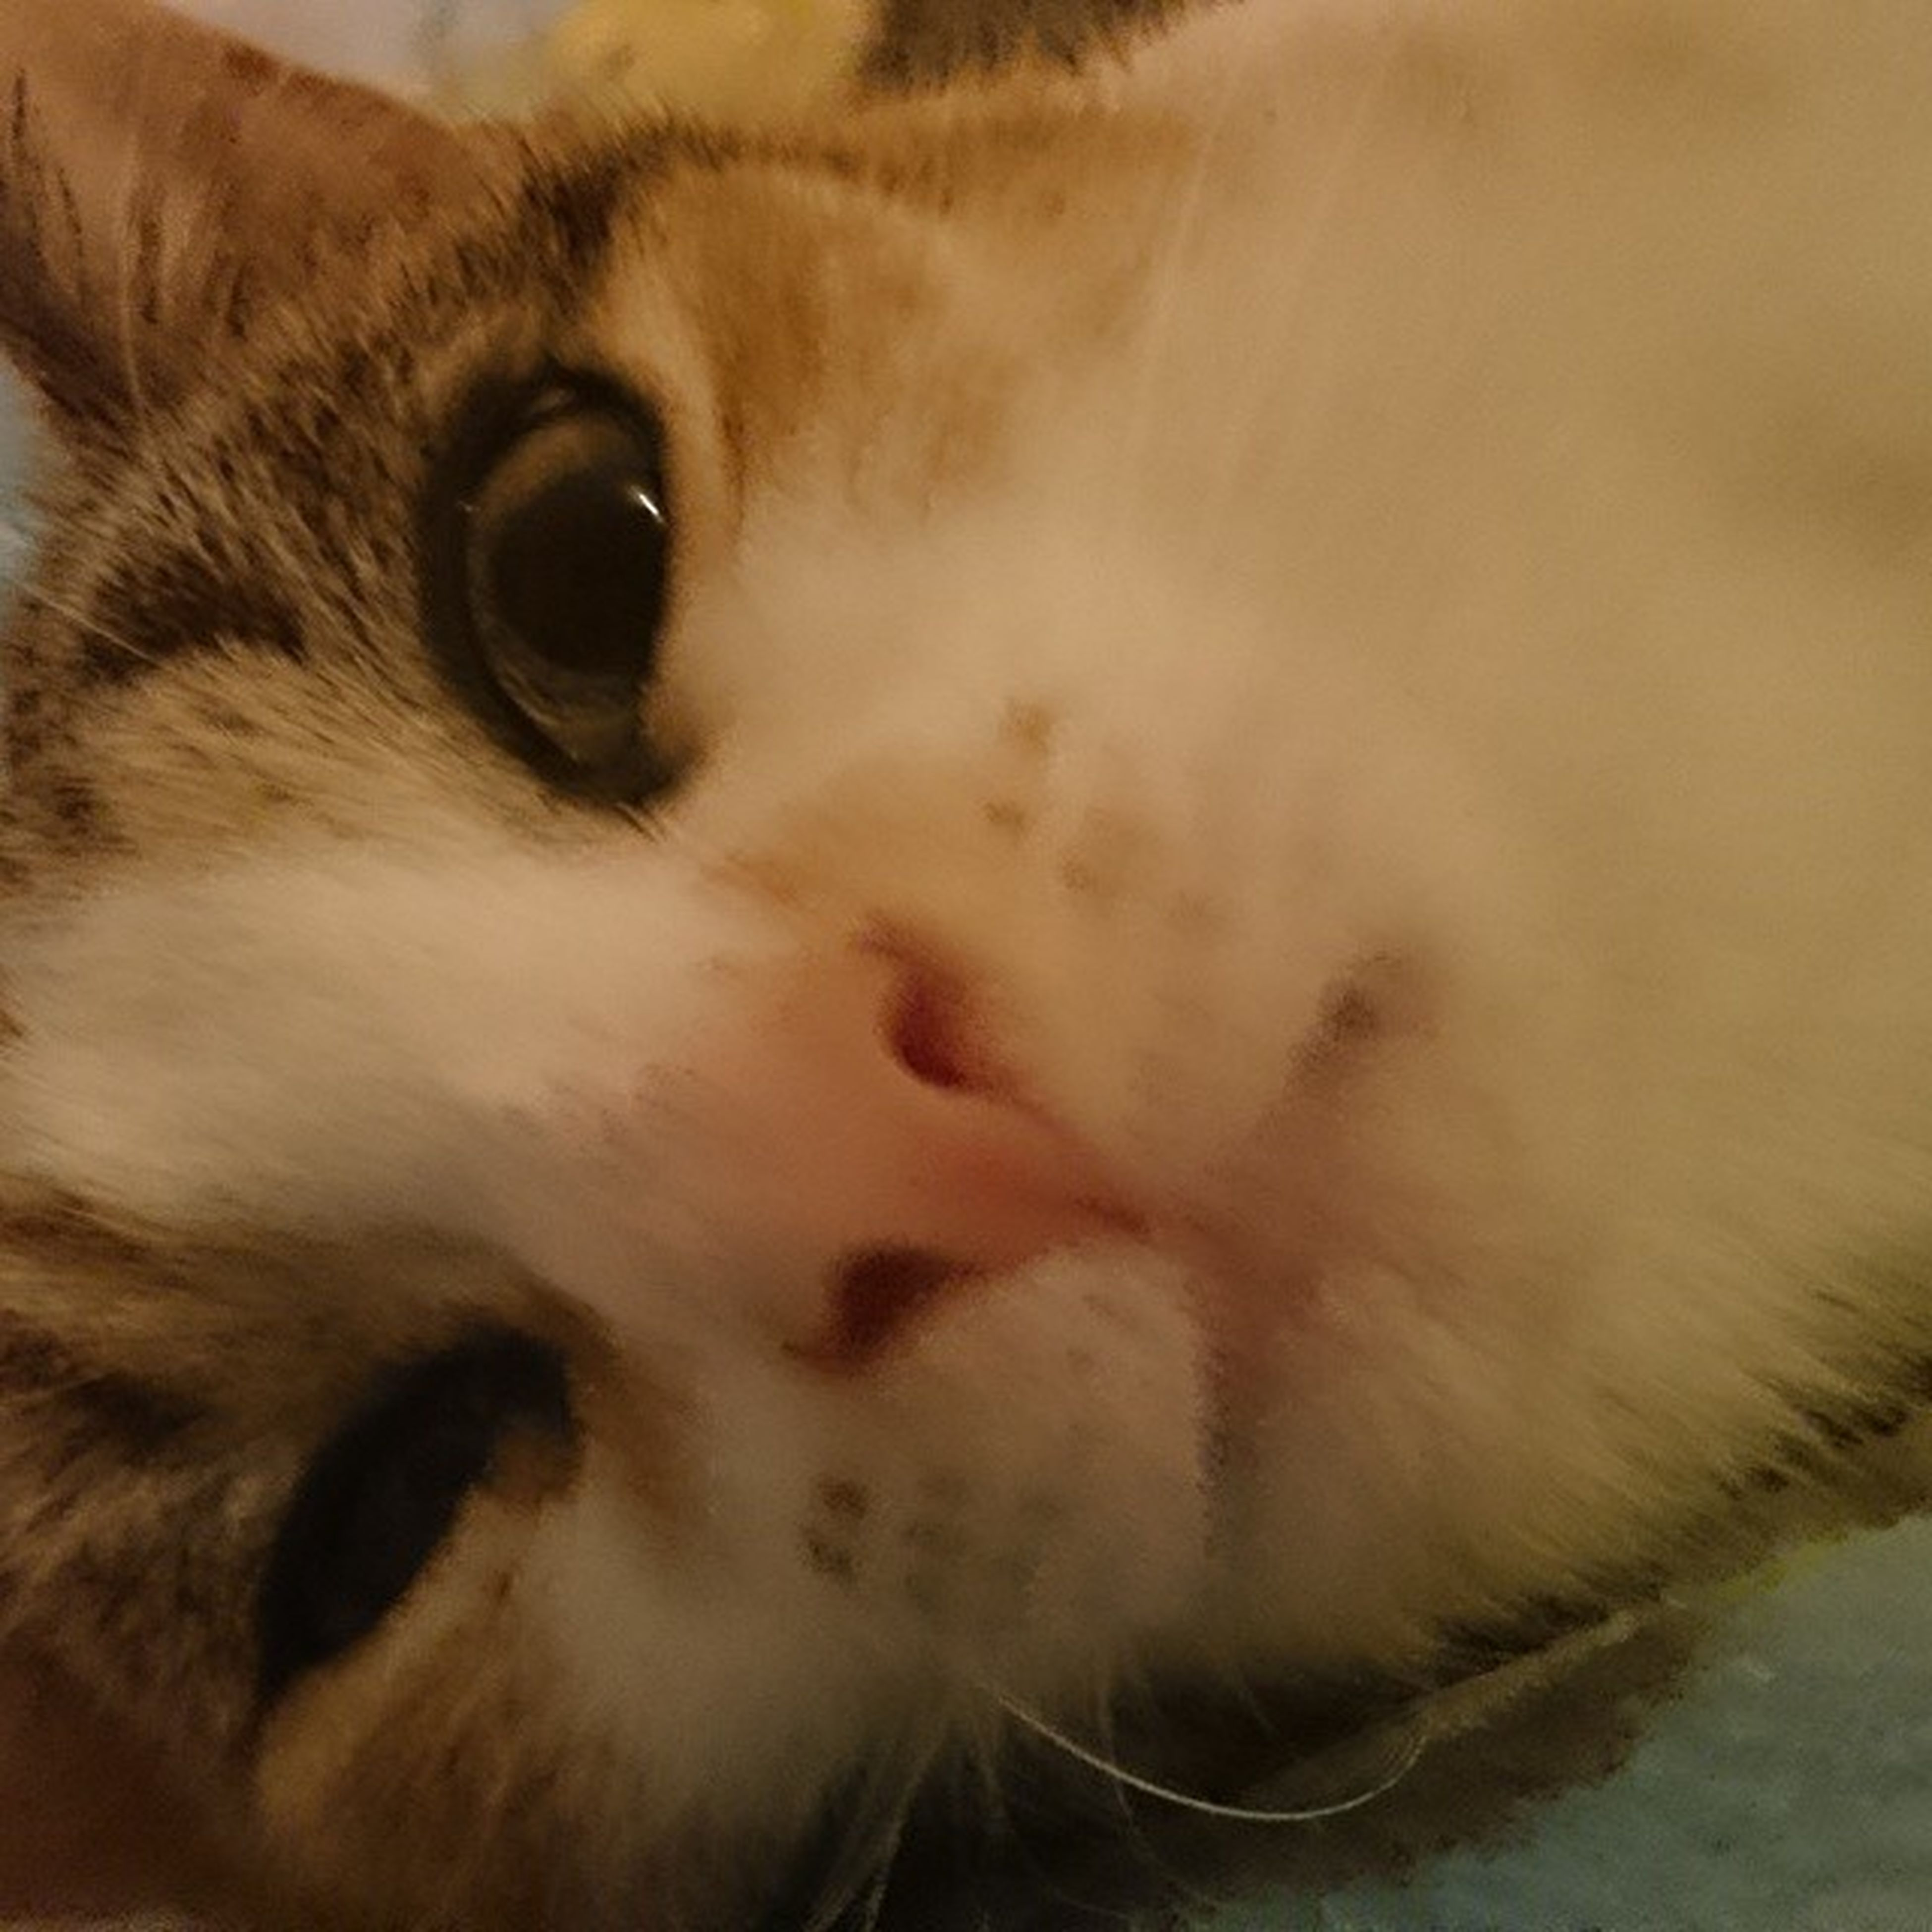 domestic animals, pets, animal themes, one animal, mammal, domestic cat, animal head, cat, close-up, indoors, whisker, animal body part, feline, portrait, animal eye, looking at camera, relaxation, snout, part of, animal hair